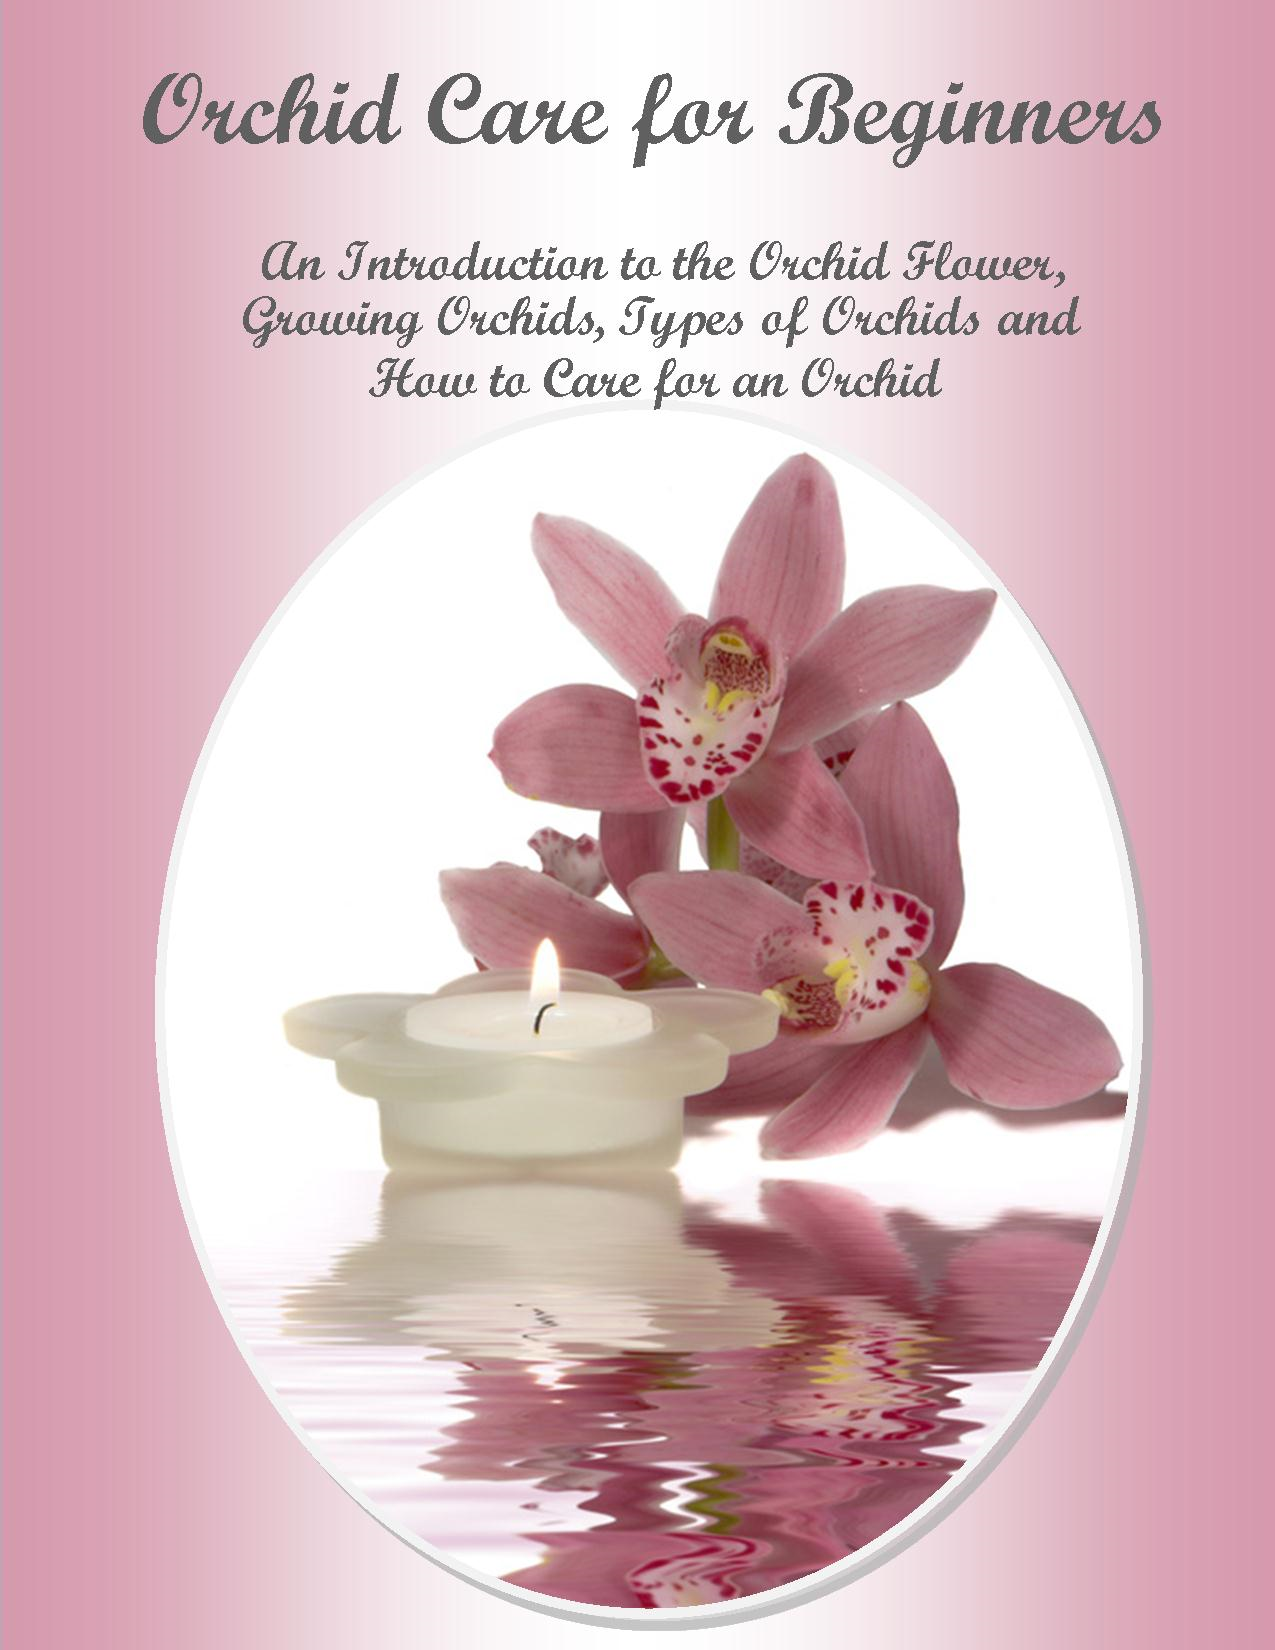 Orchid Care  for Beginners  An Introduction to the Orchid Flower, Growing Orchids, Types of Orchids and How to Care for an Orchid